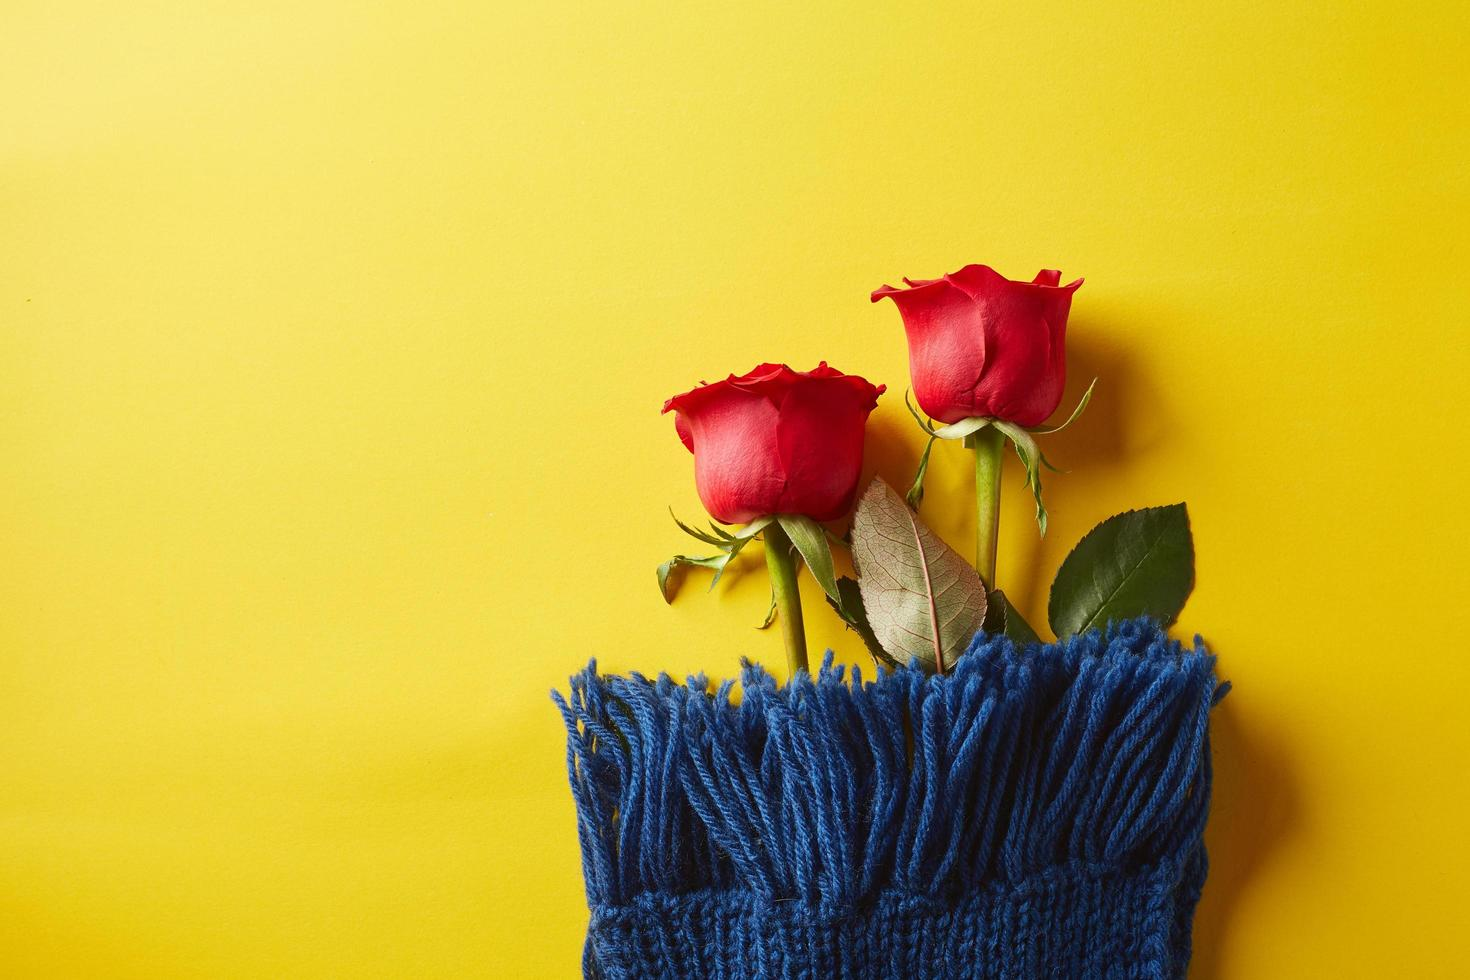 Two red roses photo